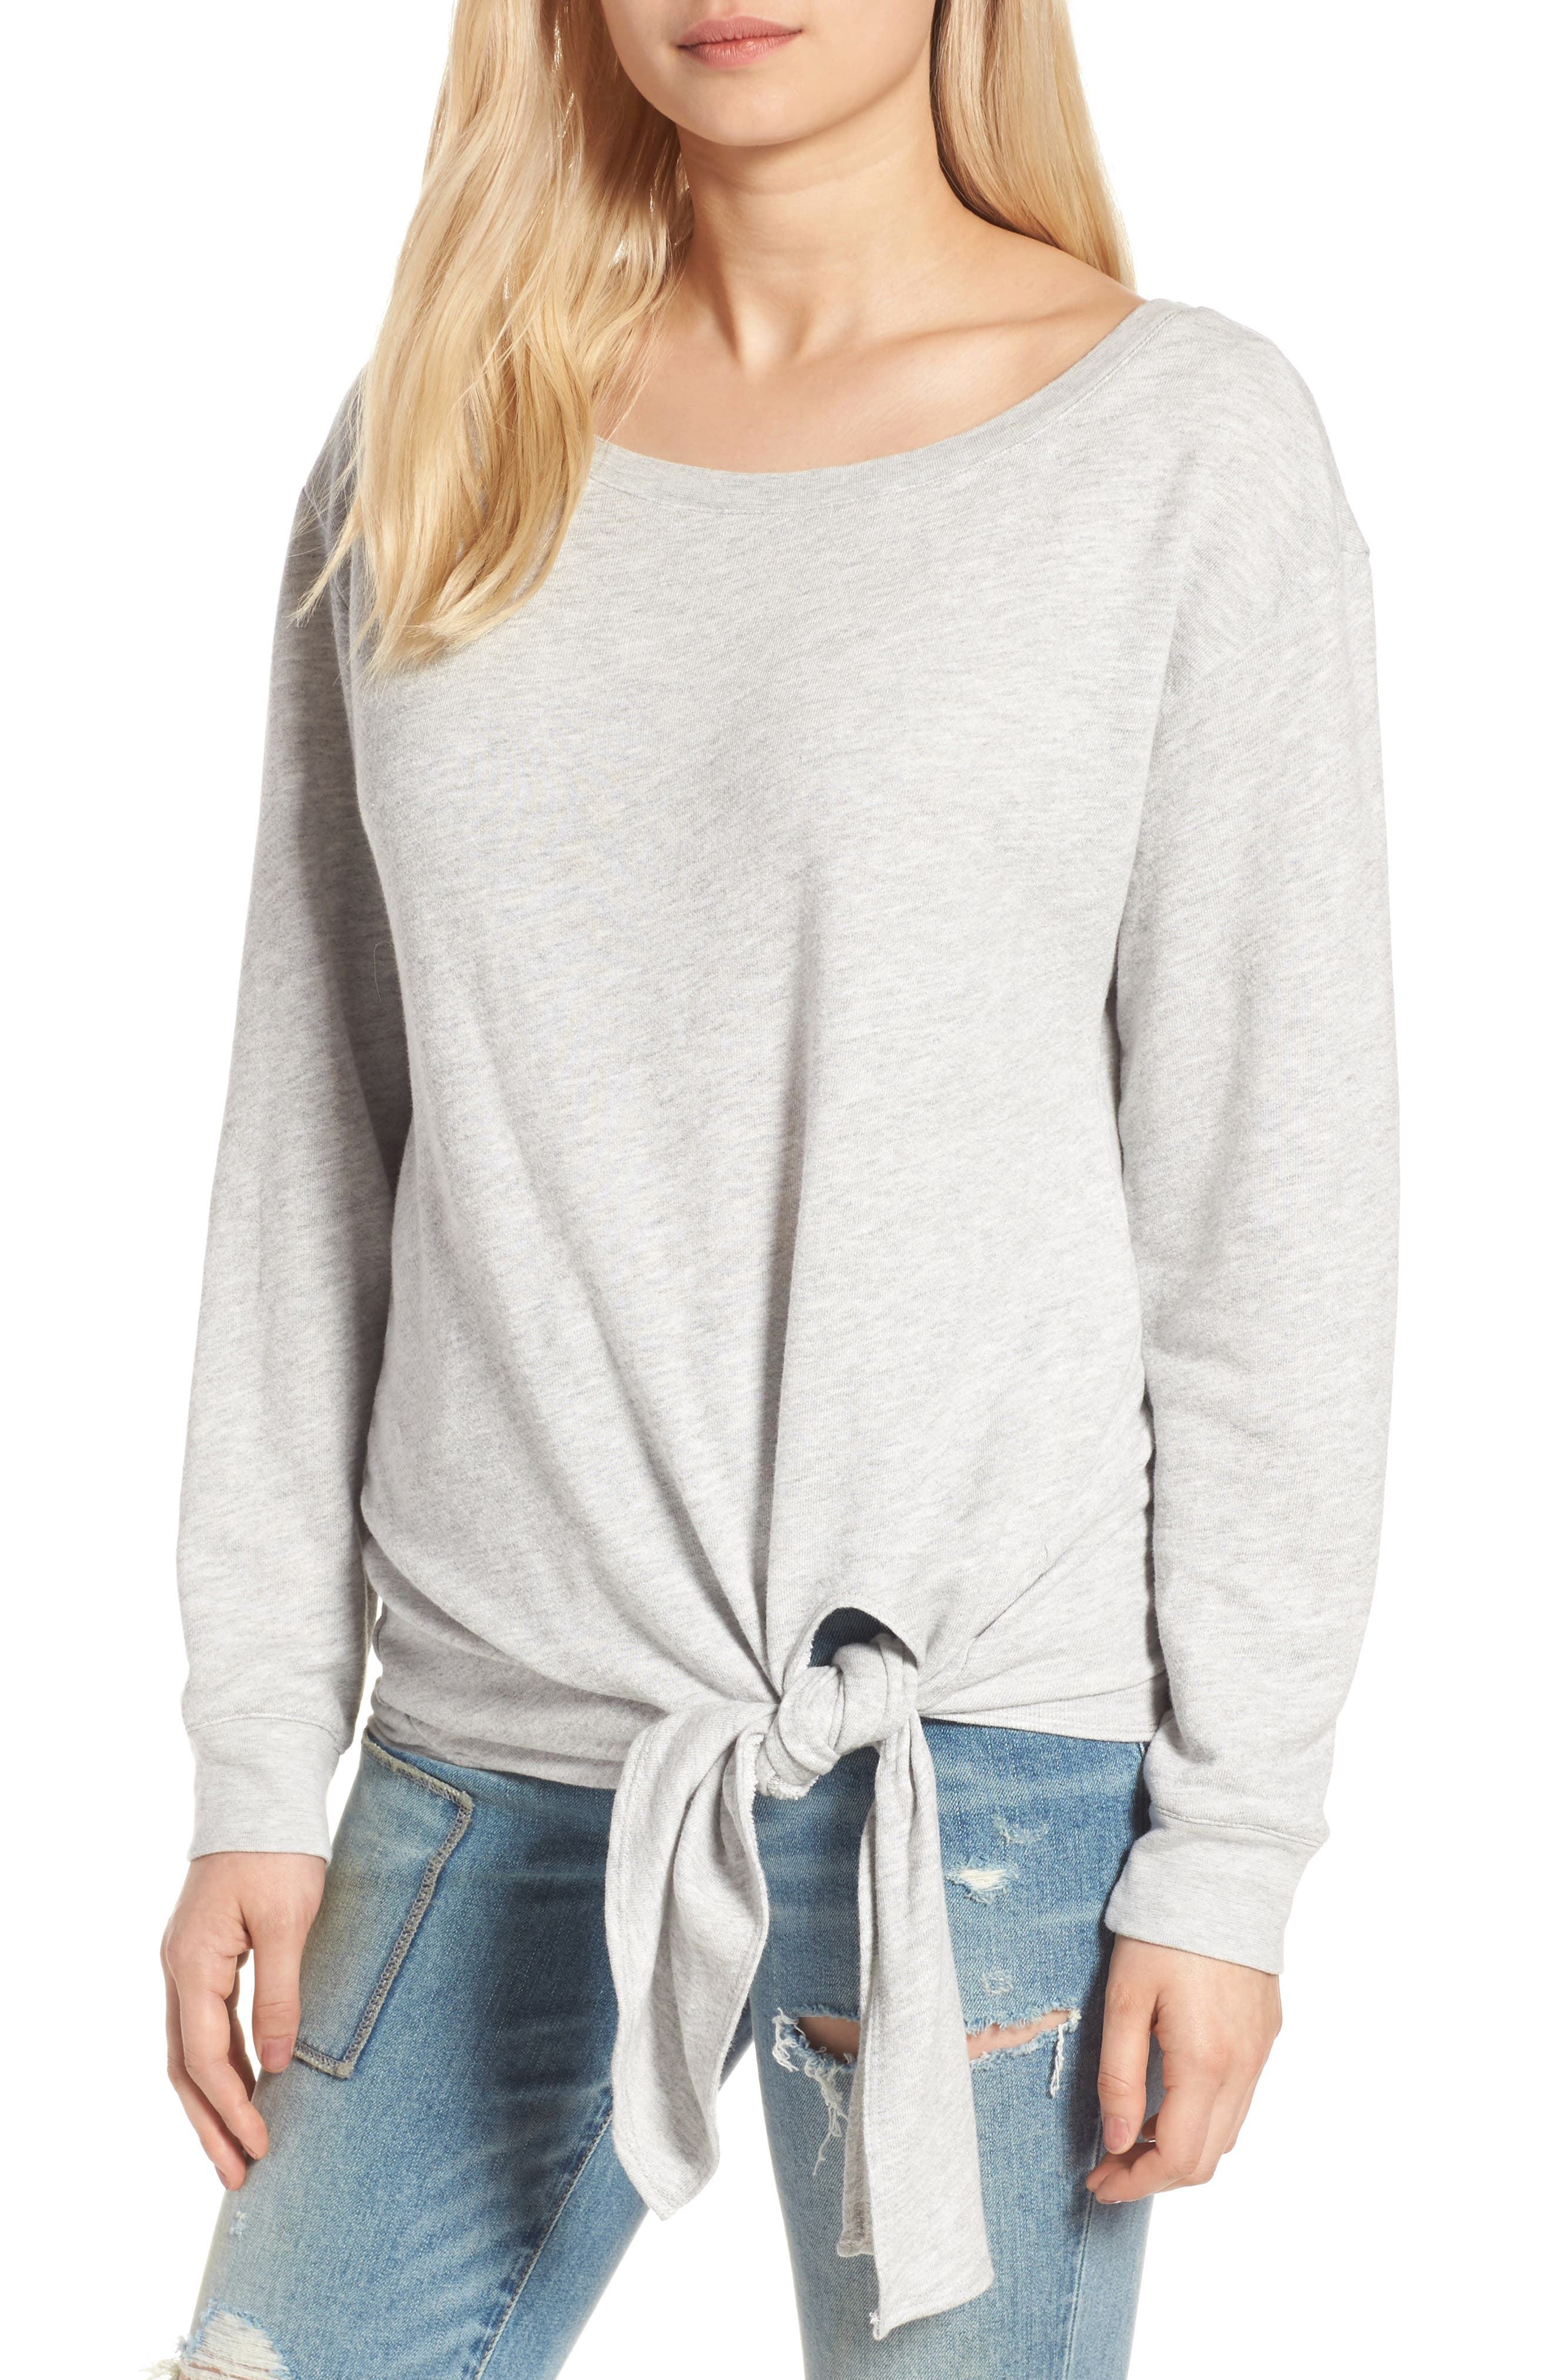 HINGE,                             Tie Front Pullover,                             Main thumbnail 1, color,                             020